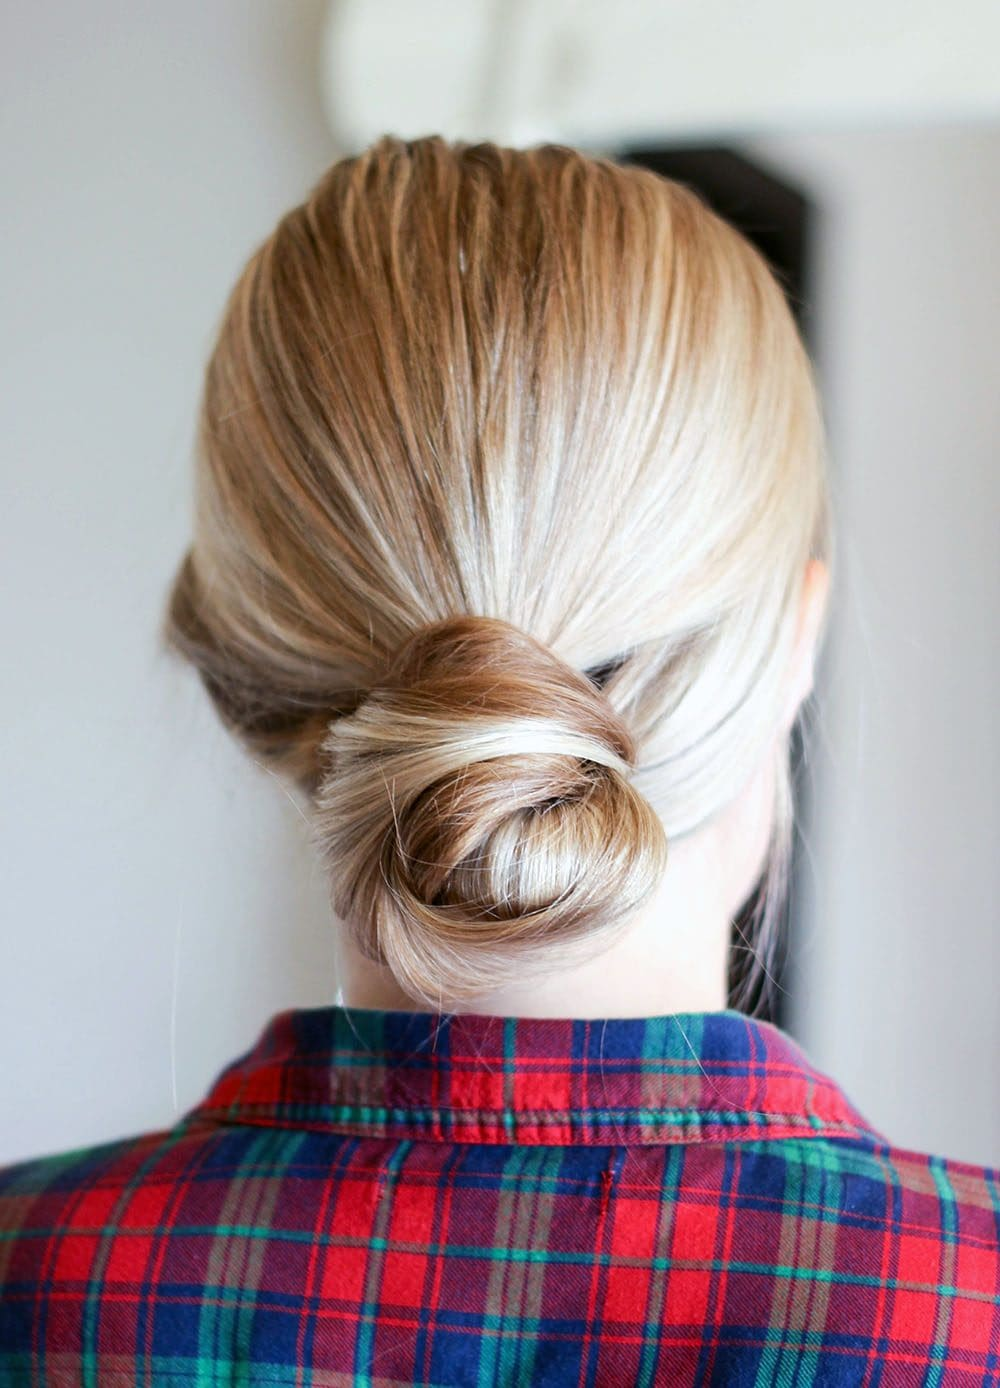 Simply bun with smoothed back hair